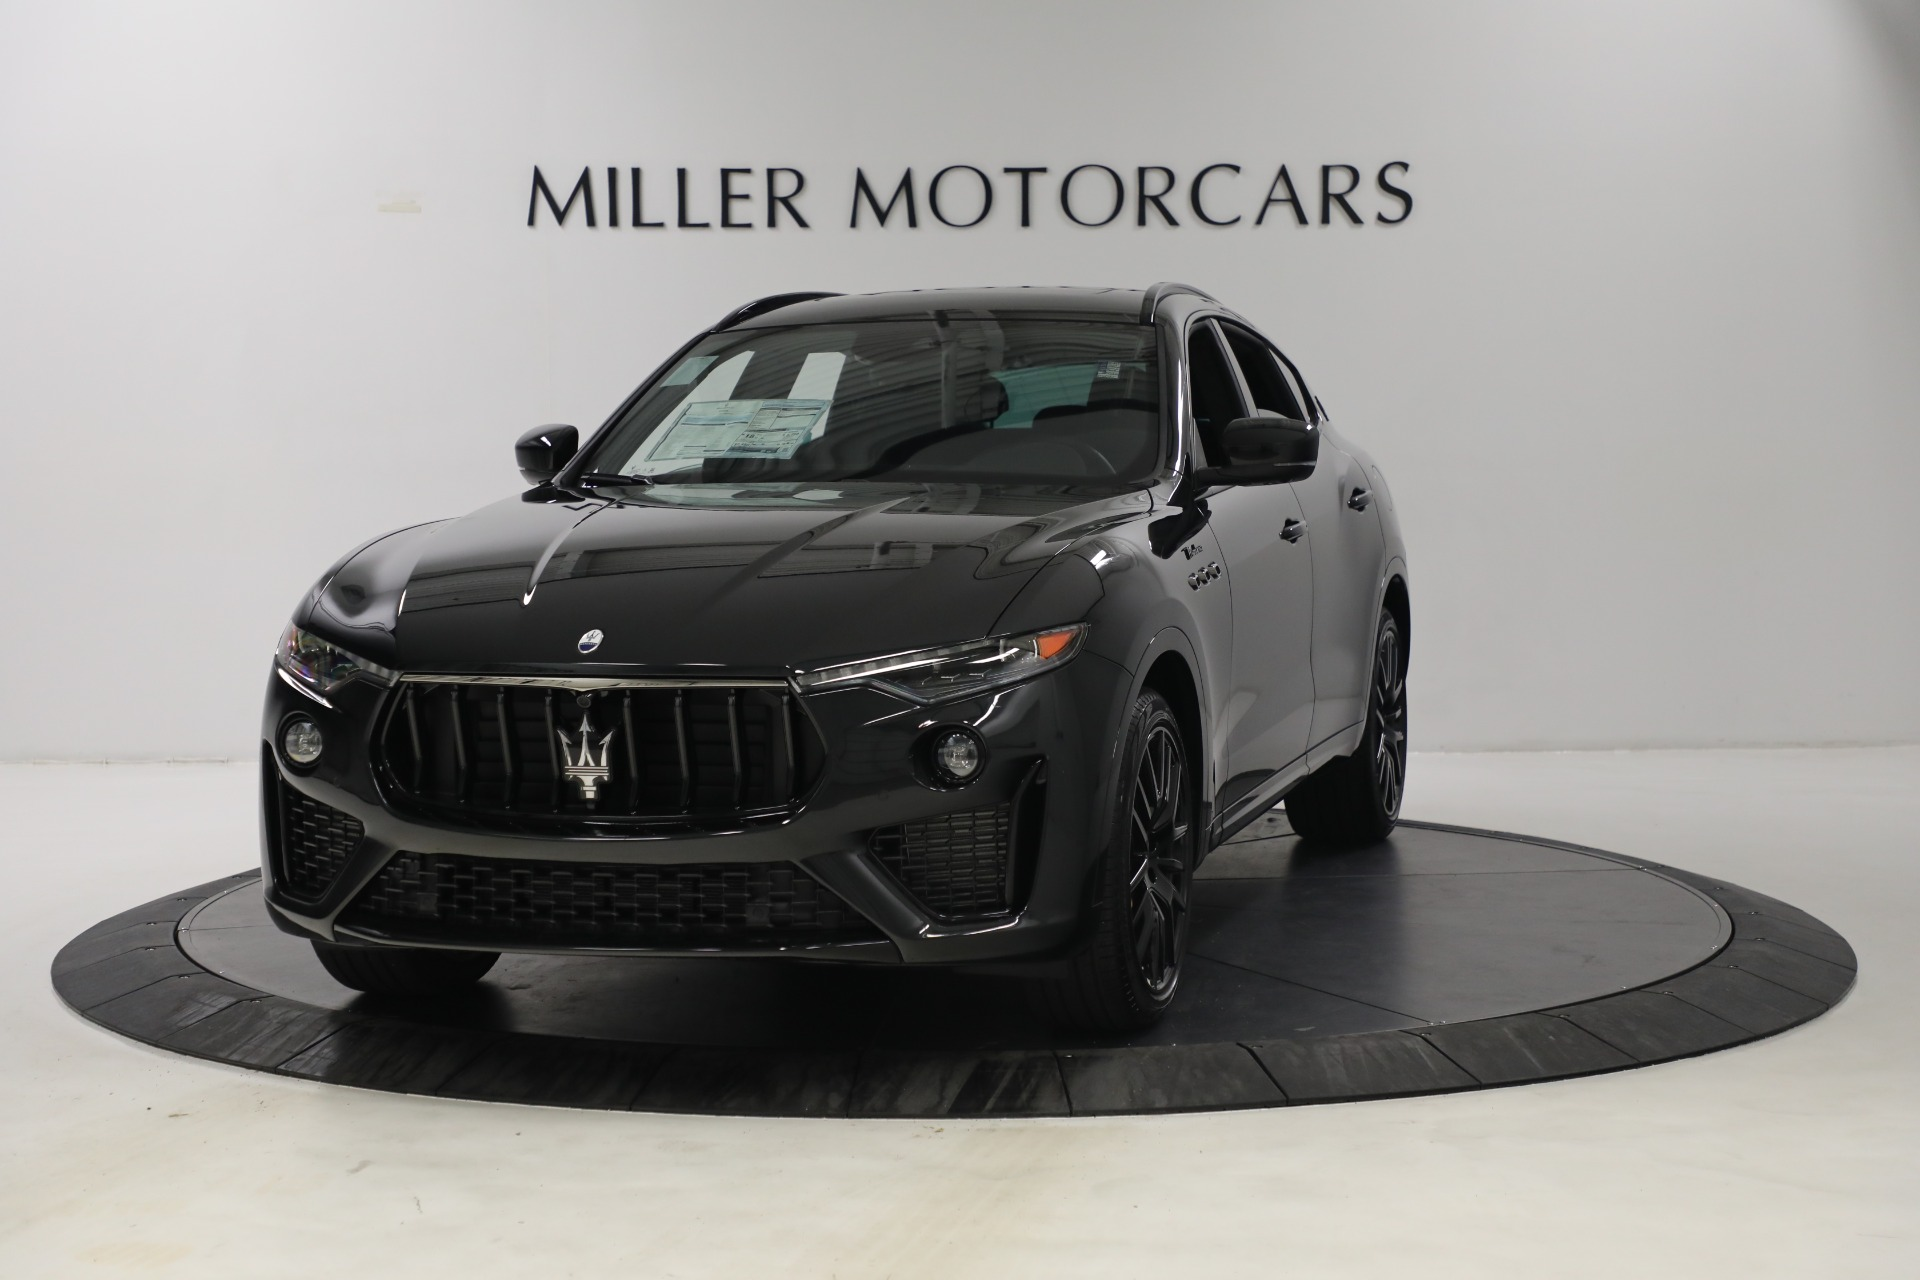 New 2022 Maserati Levante Modena for sale $108,775 at Rolls-Royce Motor Cars Greenwich in Greenwich CT 06830 1